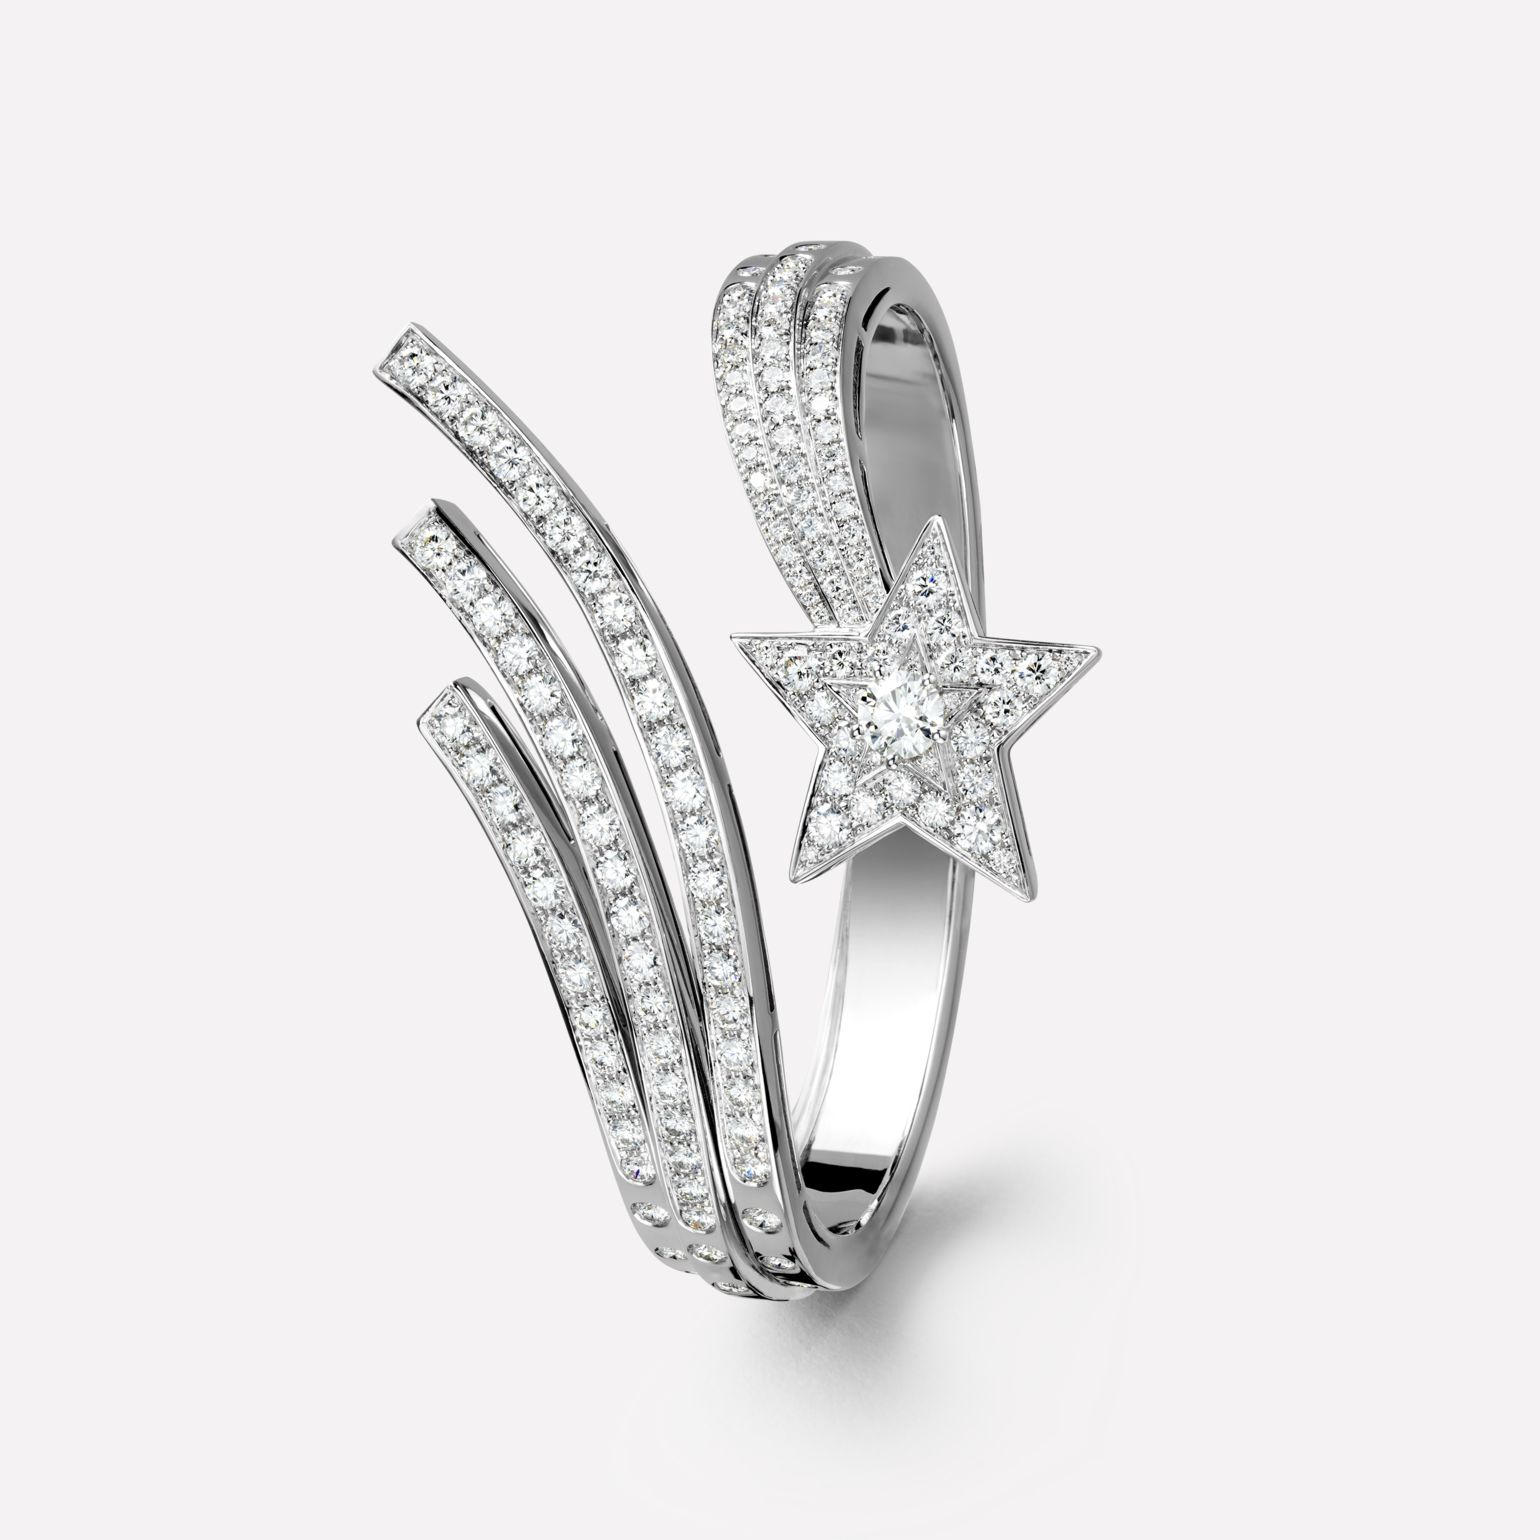 Comète Bracelet Shooting star bracelet in 18K white gold, diamonds and central diamond